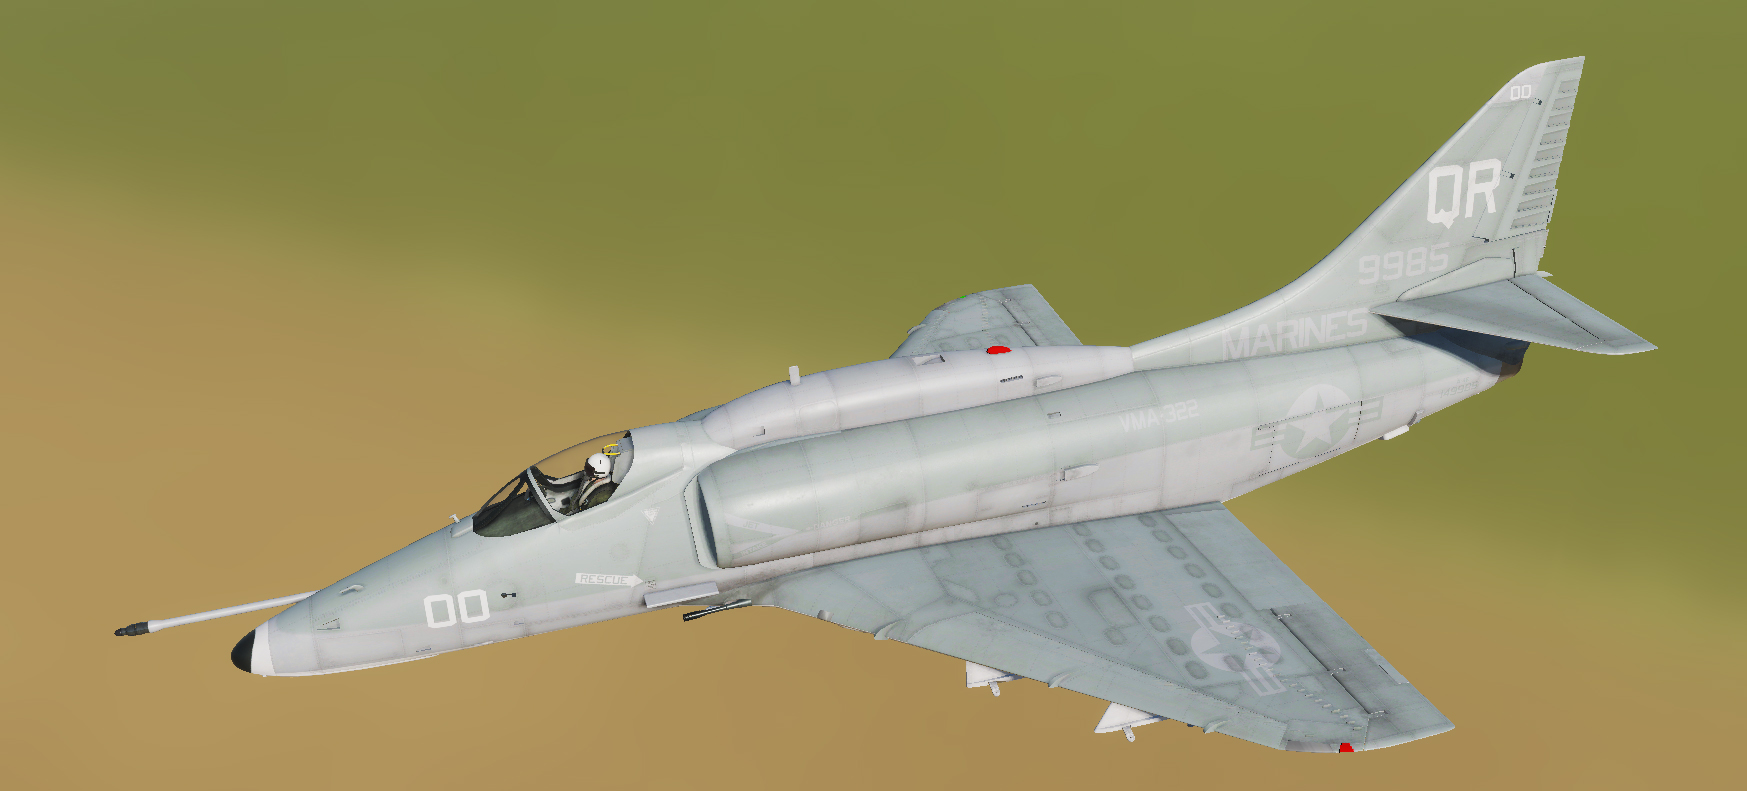 A-4E: VMA-322 Fighting Gamecocks